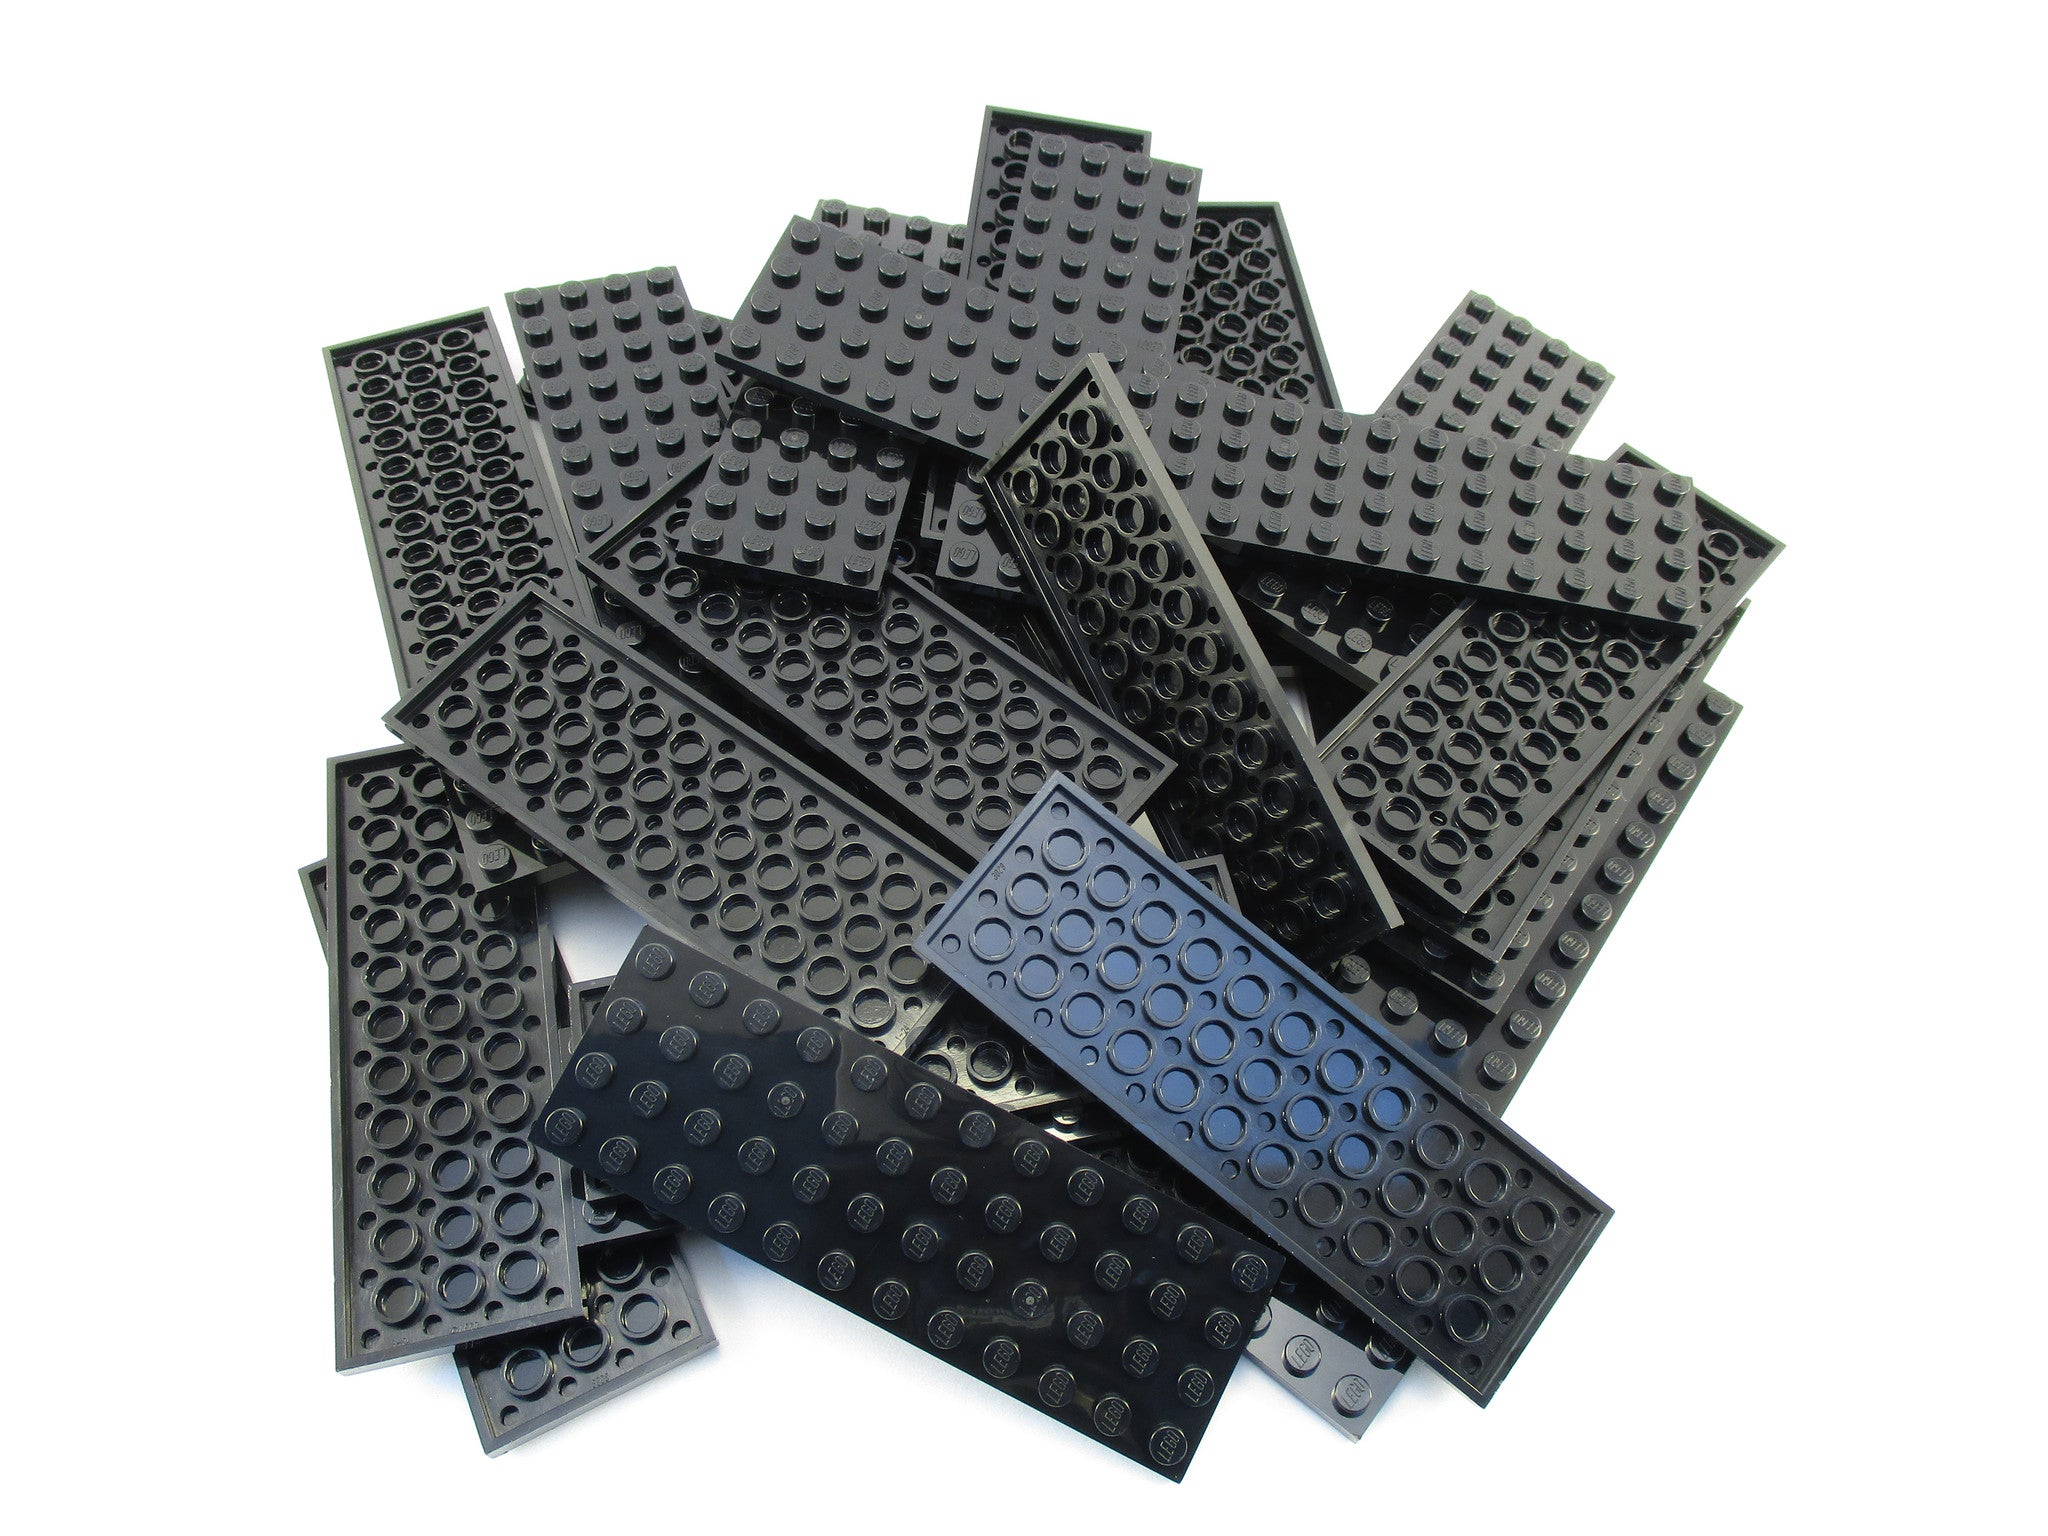 LEGO Black Plate 4x12 Lot of 25 Parts Pieces 3029